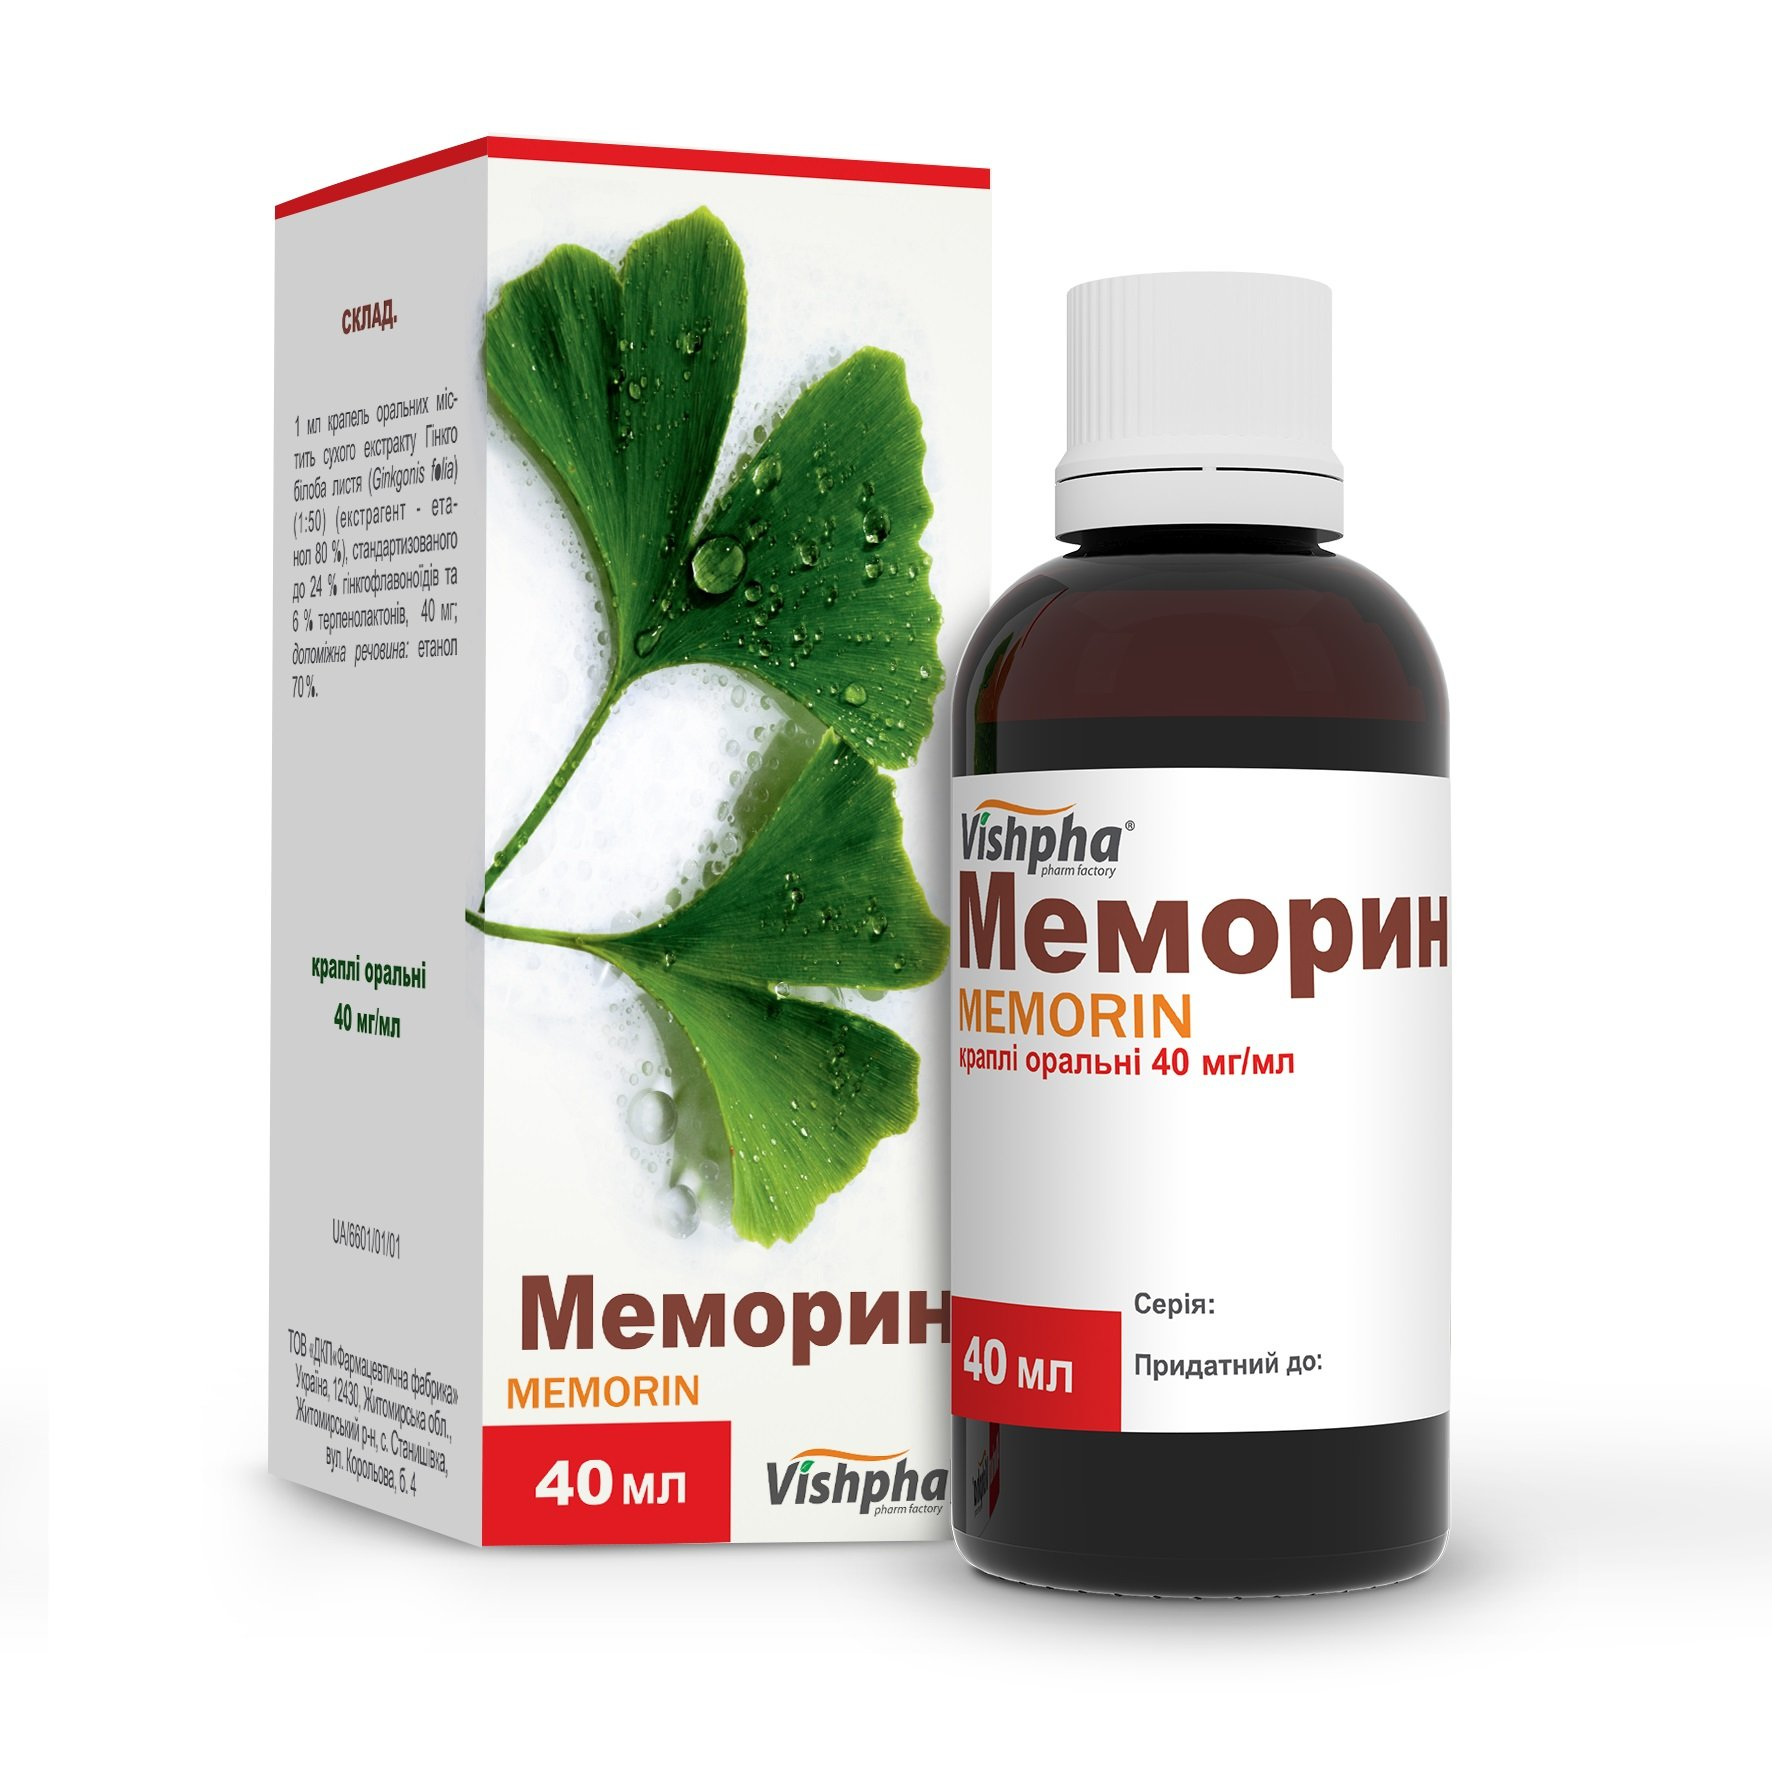 Memorin (dry extract of Ginkgo biloba leaves) oral drops 40 mg/ml. 40 ml.